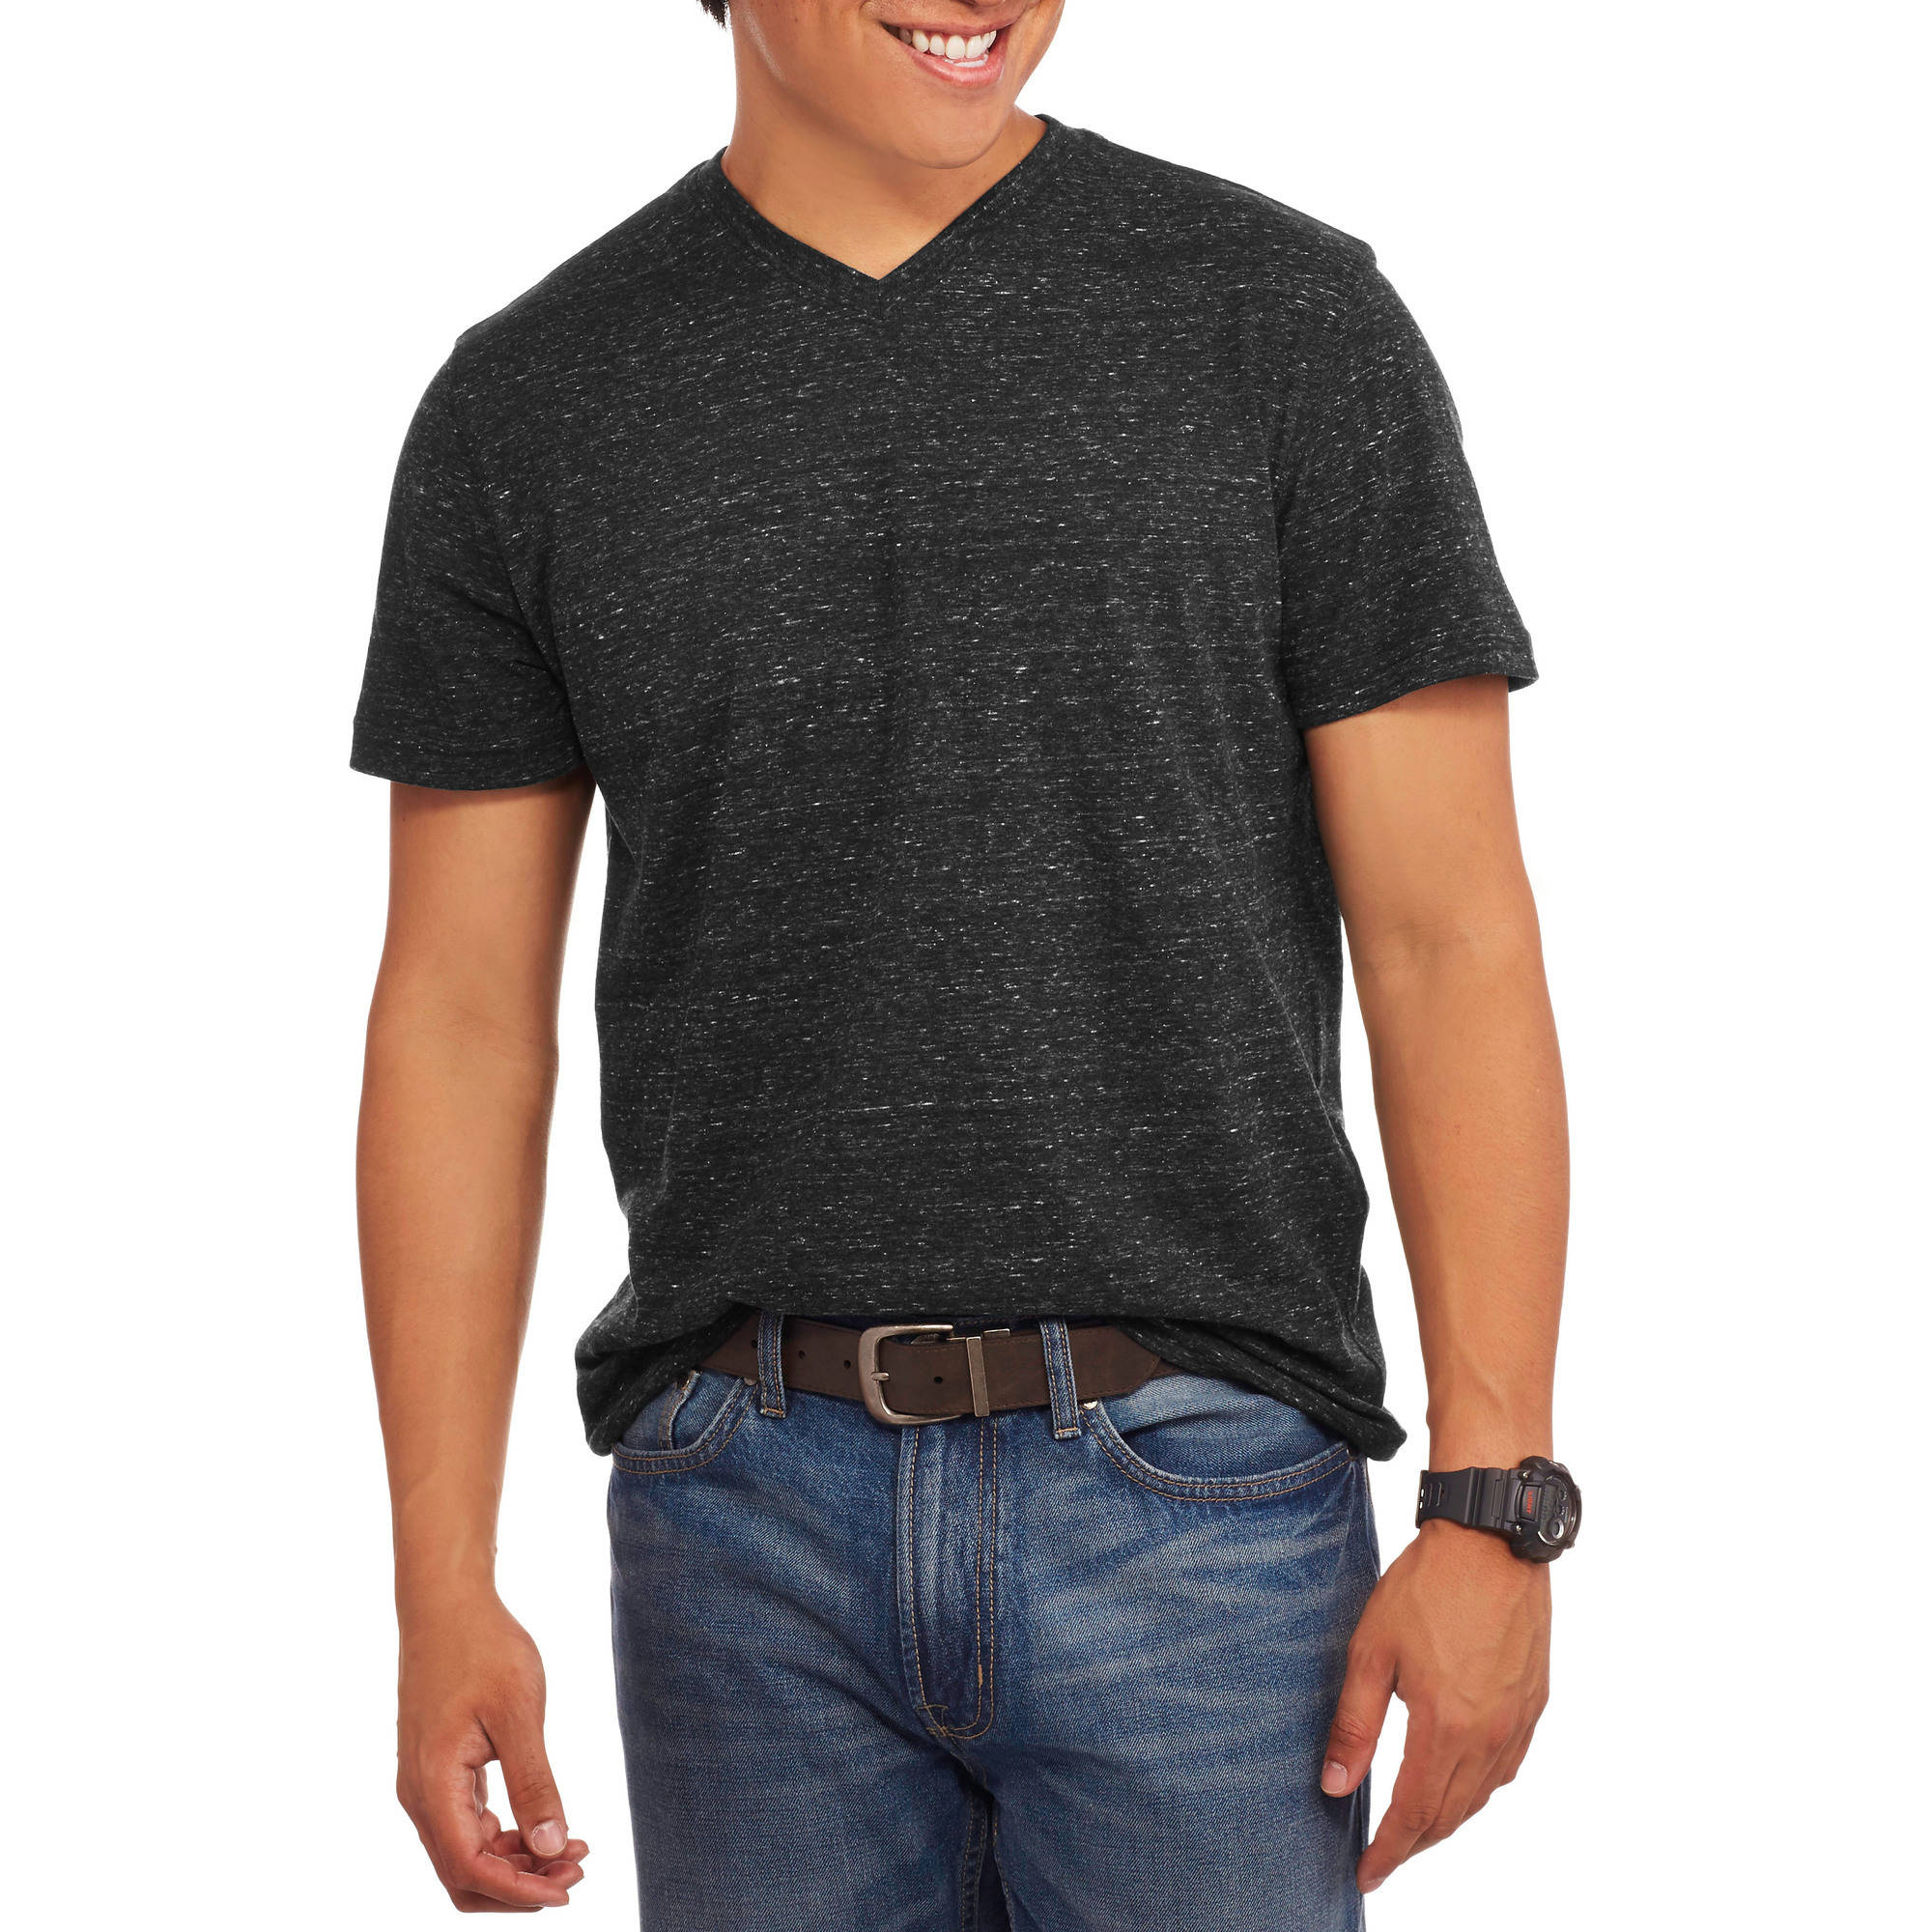 Faded Glory Men's Short Sleeve Solid V Neck Tee